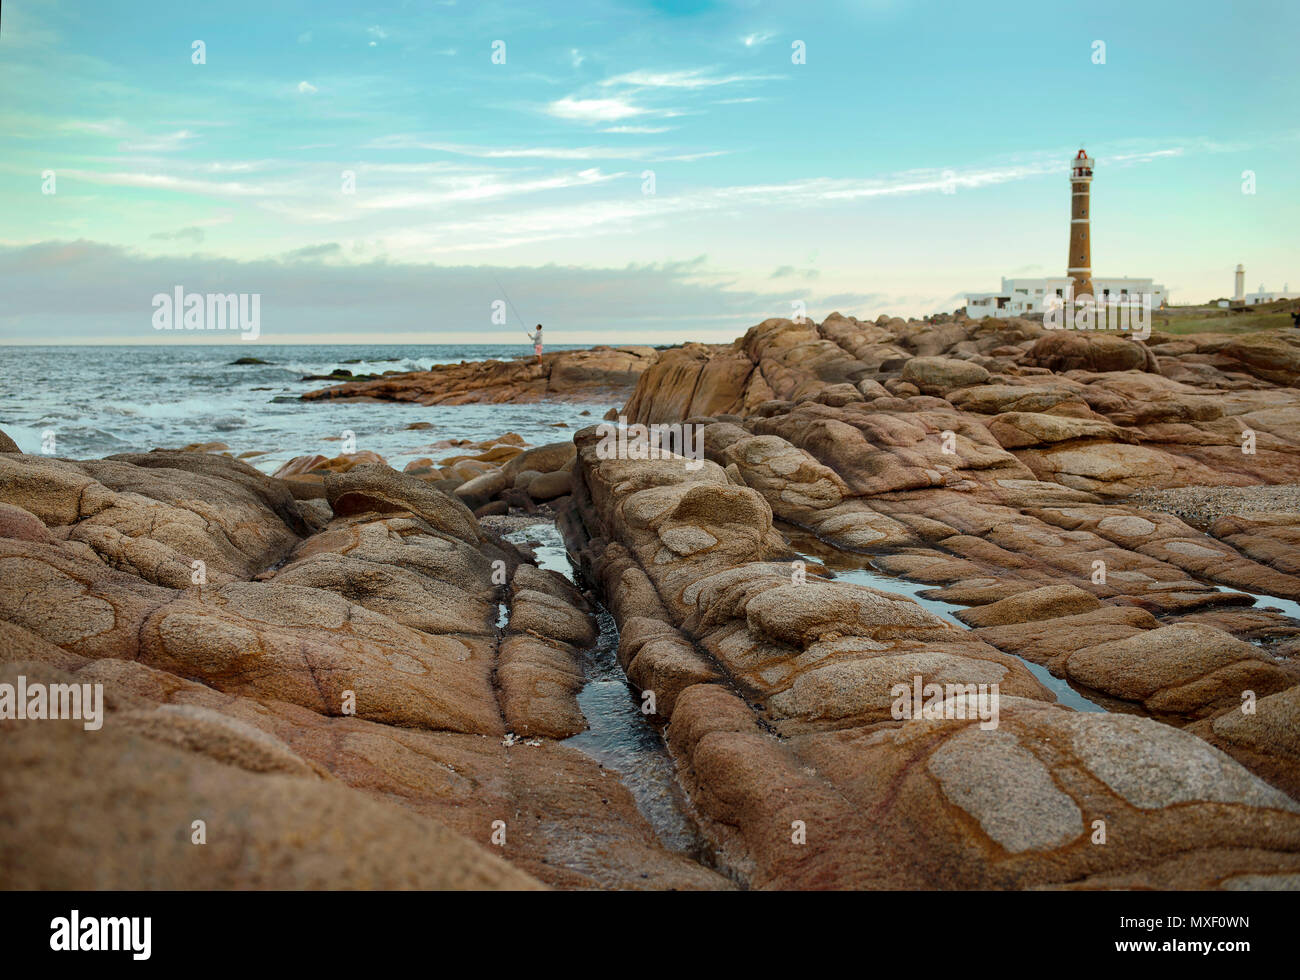 Cabo Polonio and its lighthouse in the background. UNESCO world heritage. Uruguay, South America - Stock Image